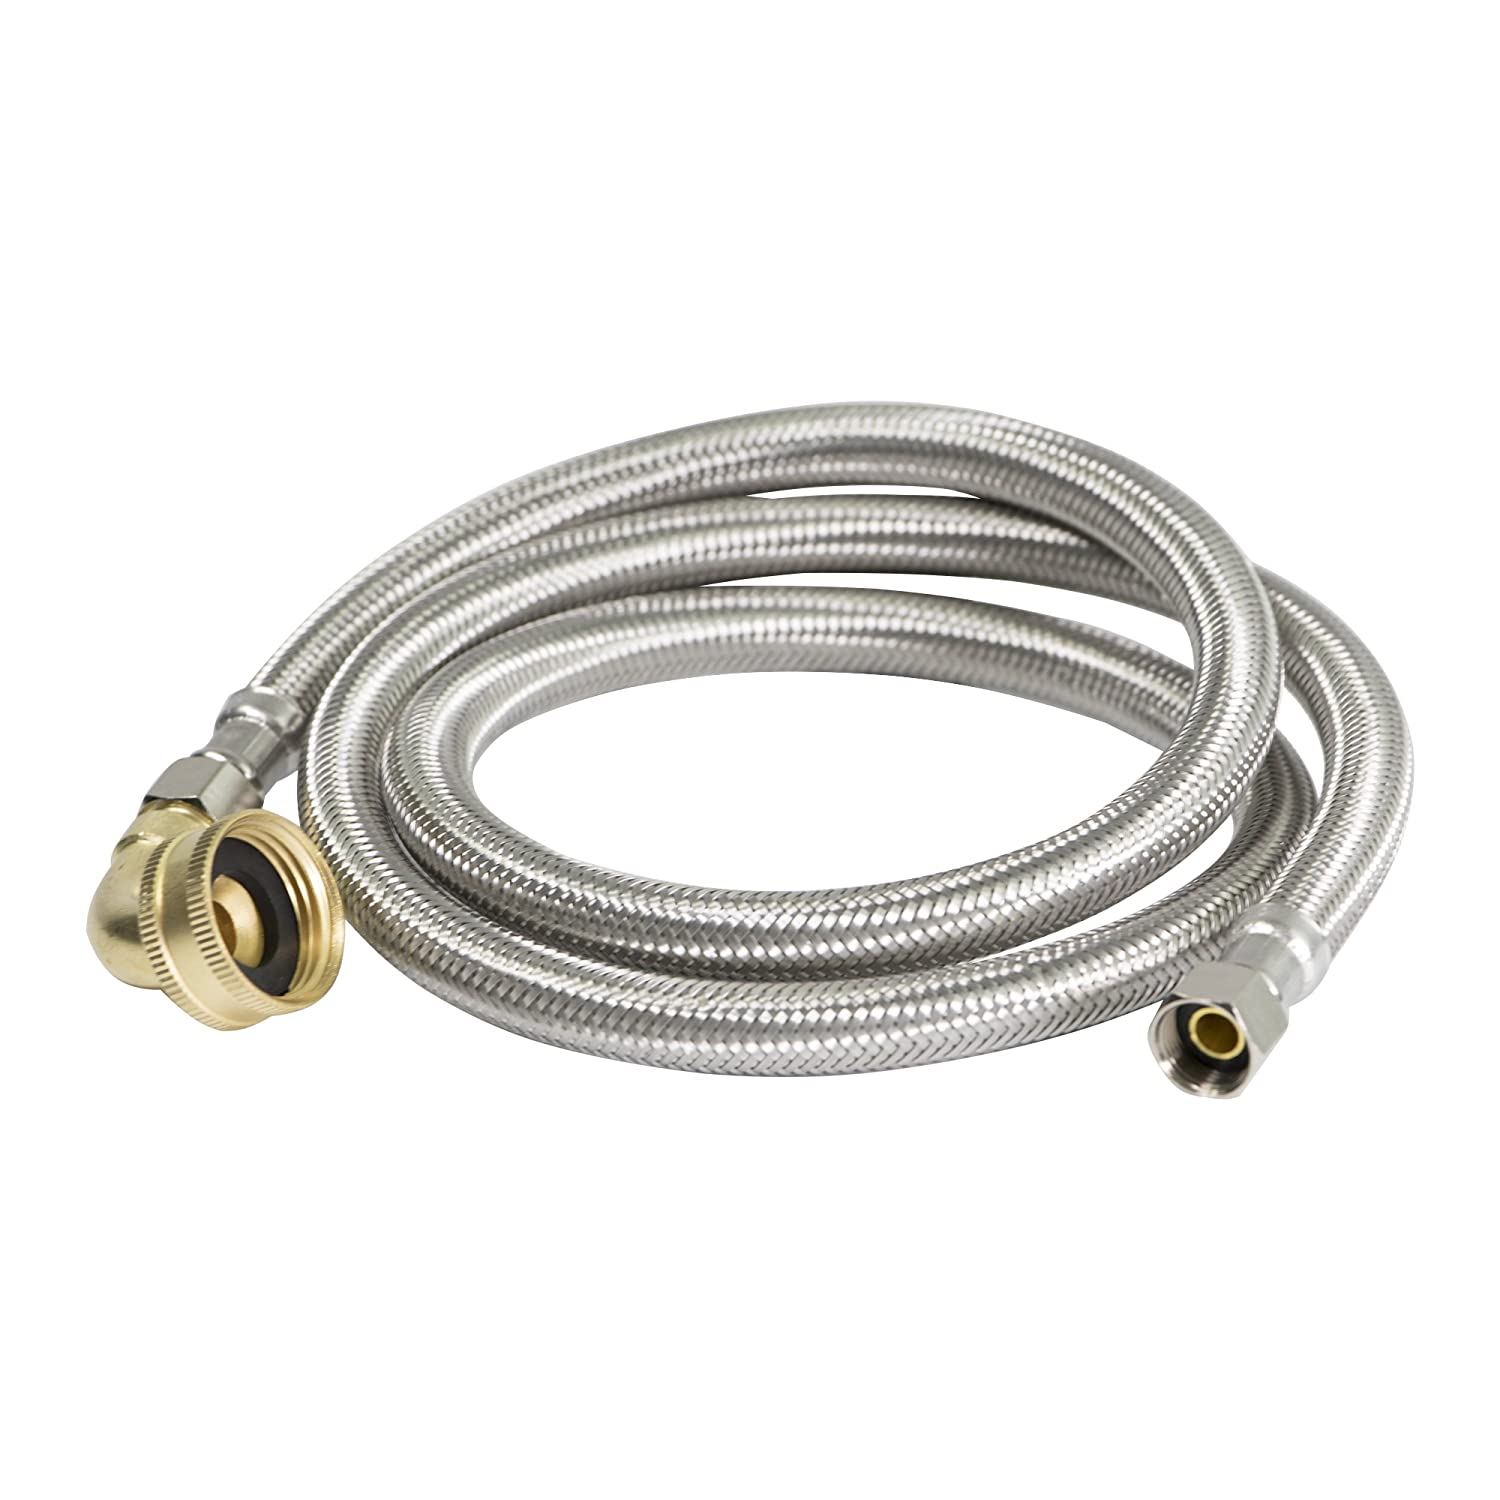 "Everflow Supplies 28772-NL Stainless Steel Dishwasher Supply Line with Swivel Elbow and with 3/8"" X 3/4"" Compression and Female Hose Thread Connect, 72"""